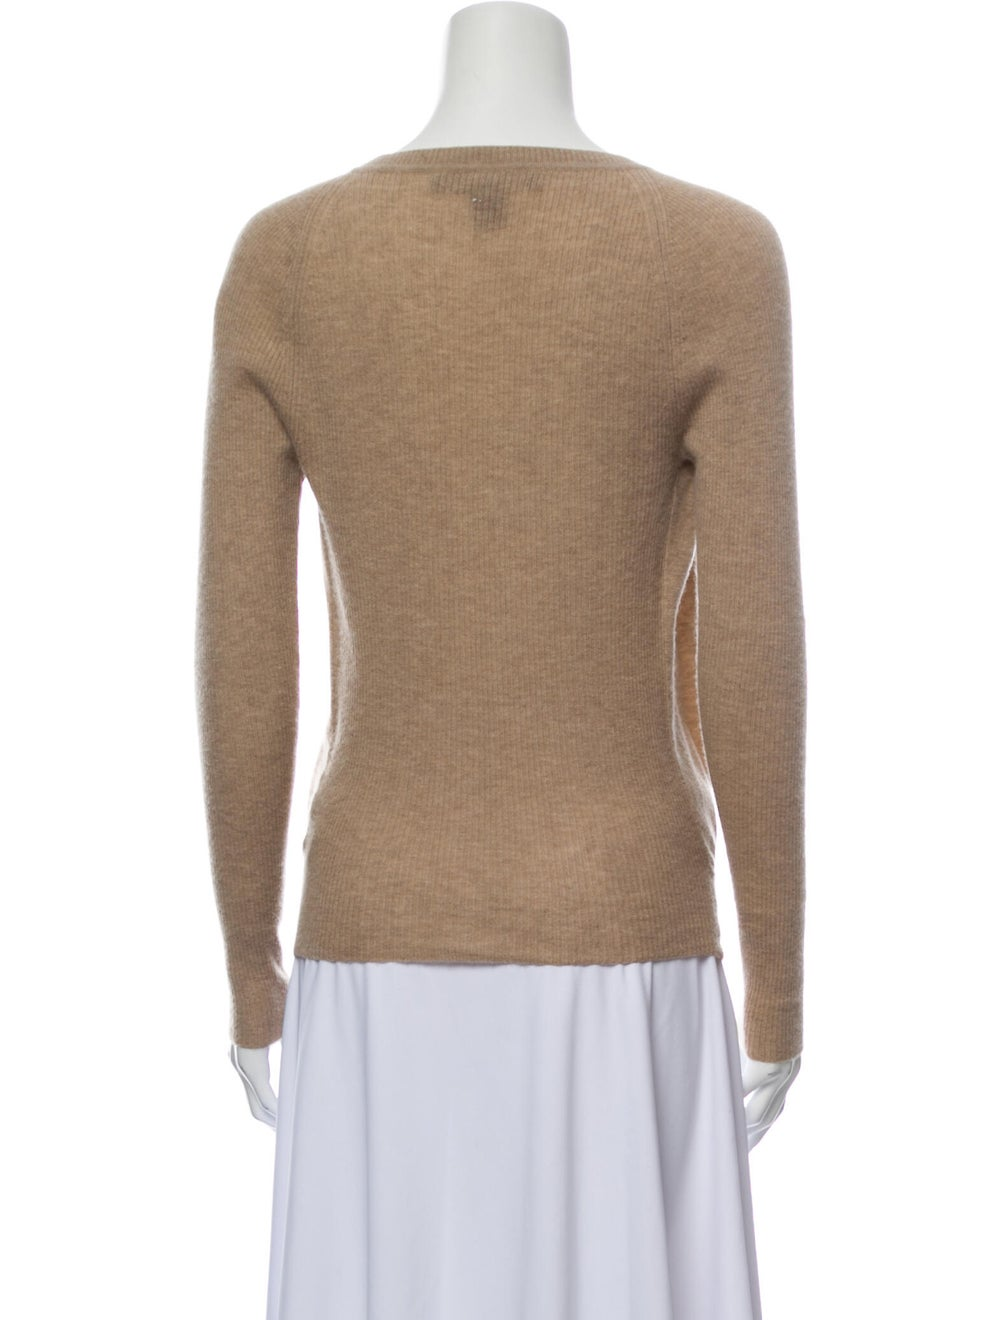 Marc by Marc Jacobs Cashmere Scoop Neck Sweater - image 3